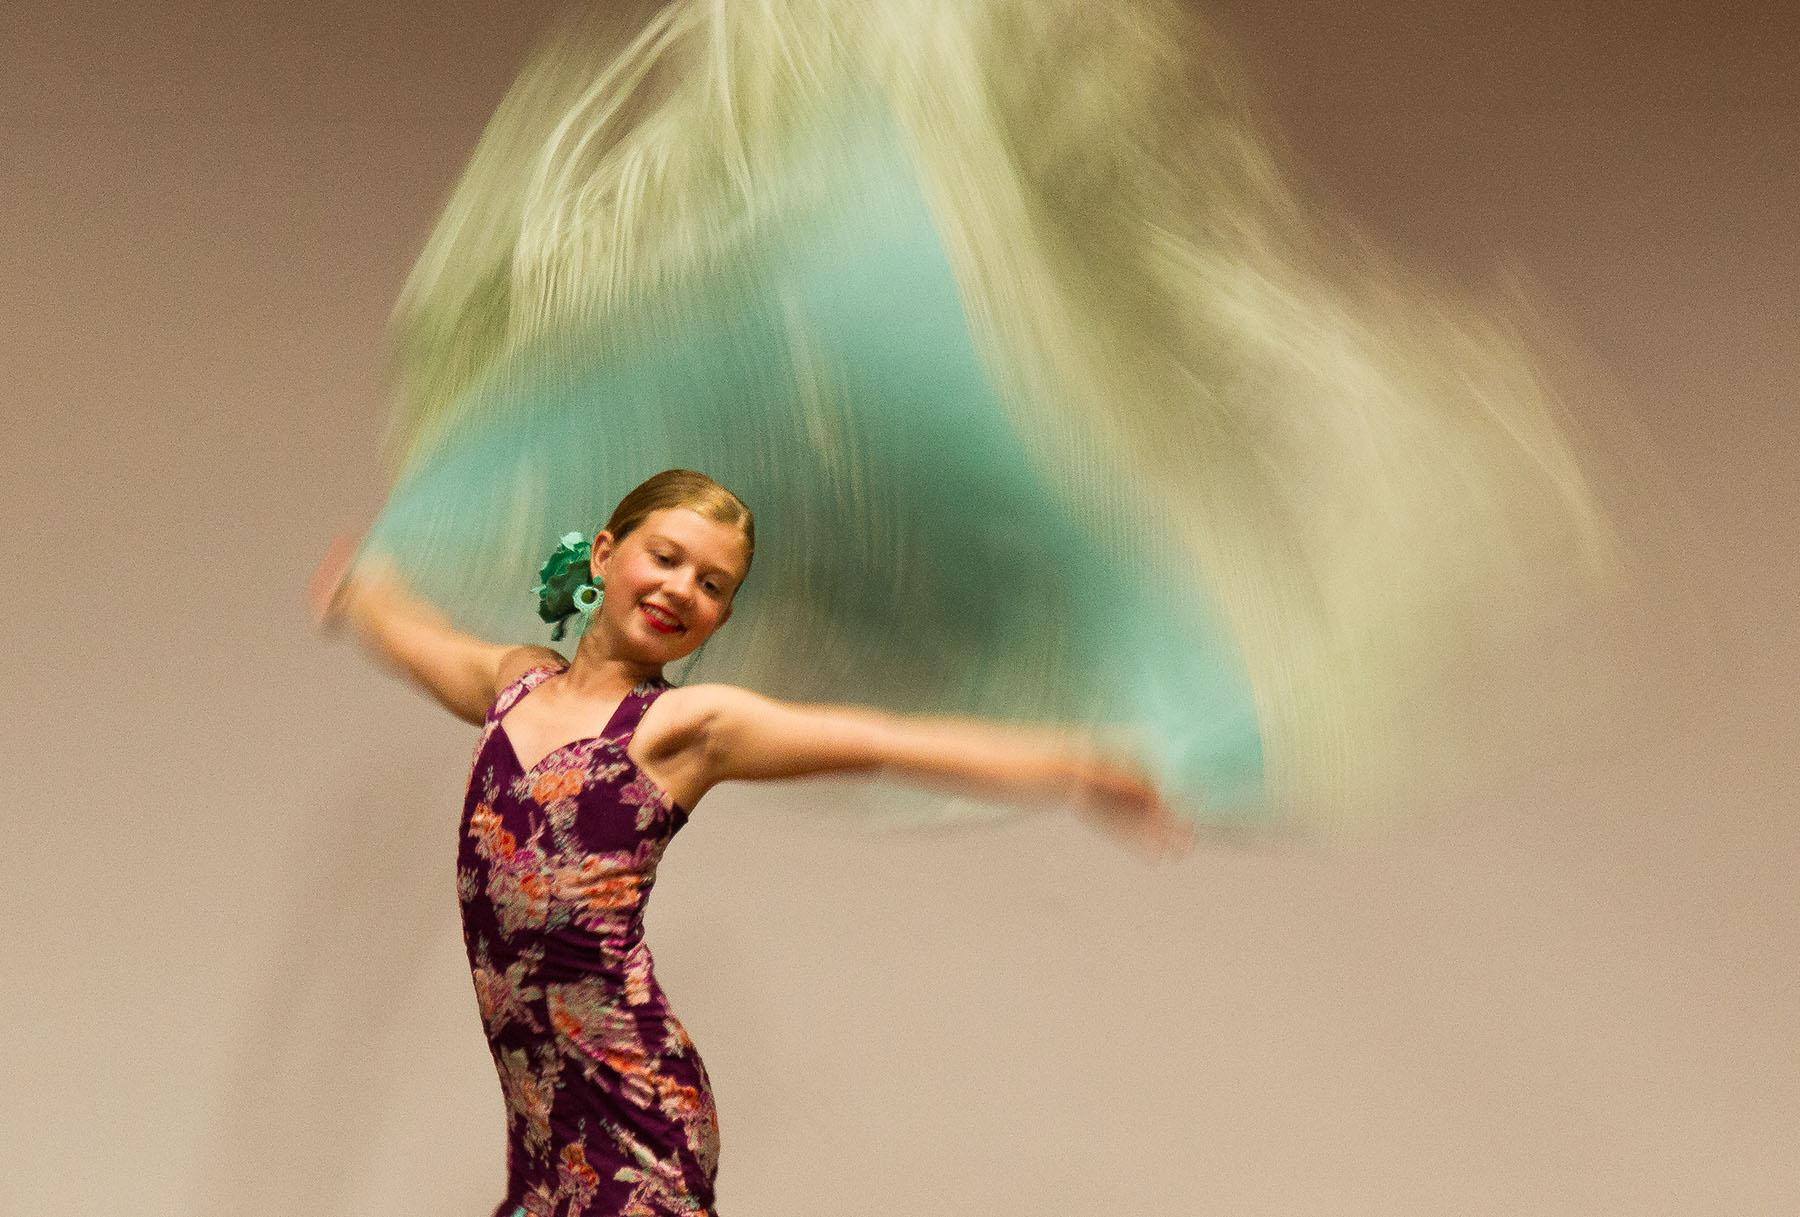 This year's Junior Spirit of Fiesta, Sarah Naretto, a 10 year old from La Patera School, performs for attendees of the sixth annual Art Without Limits; Art Career Day Conference on Saturday, April 23, 2016, in the FeBland Forum at Santa Barbara City College. Naretto, a two time finalist for the Junior Spirit of Fiesta title, has been flamenco dancing at the Zermeno Dance Academy since she was seven years old.